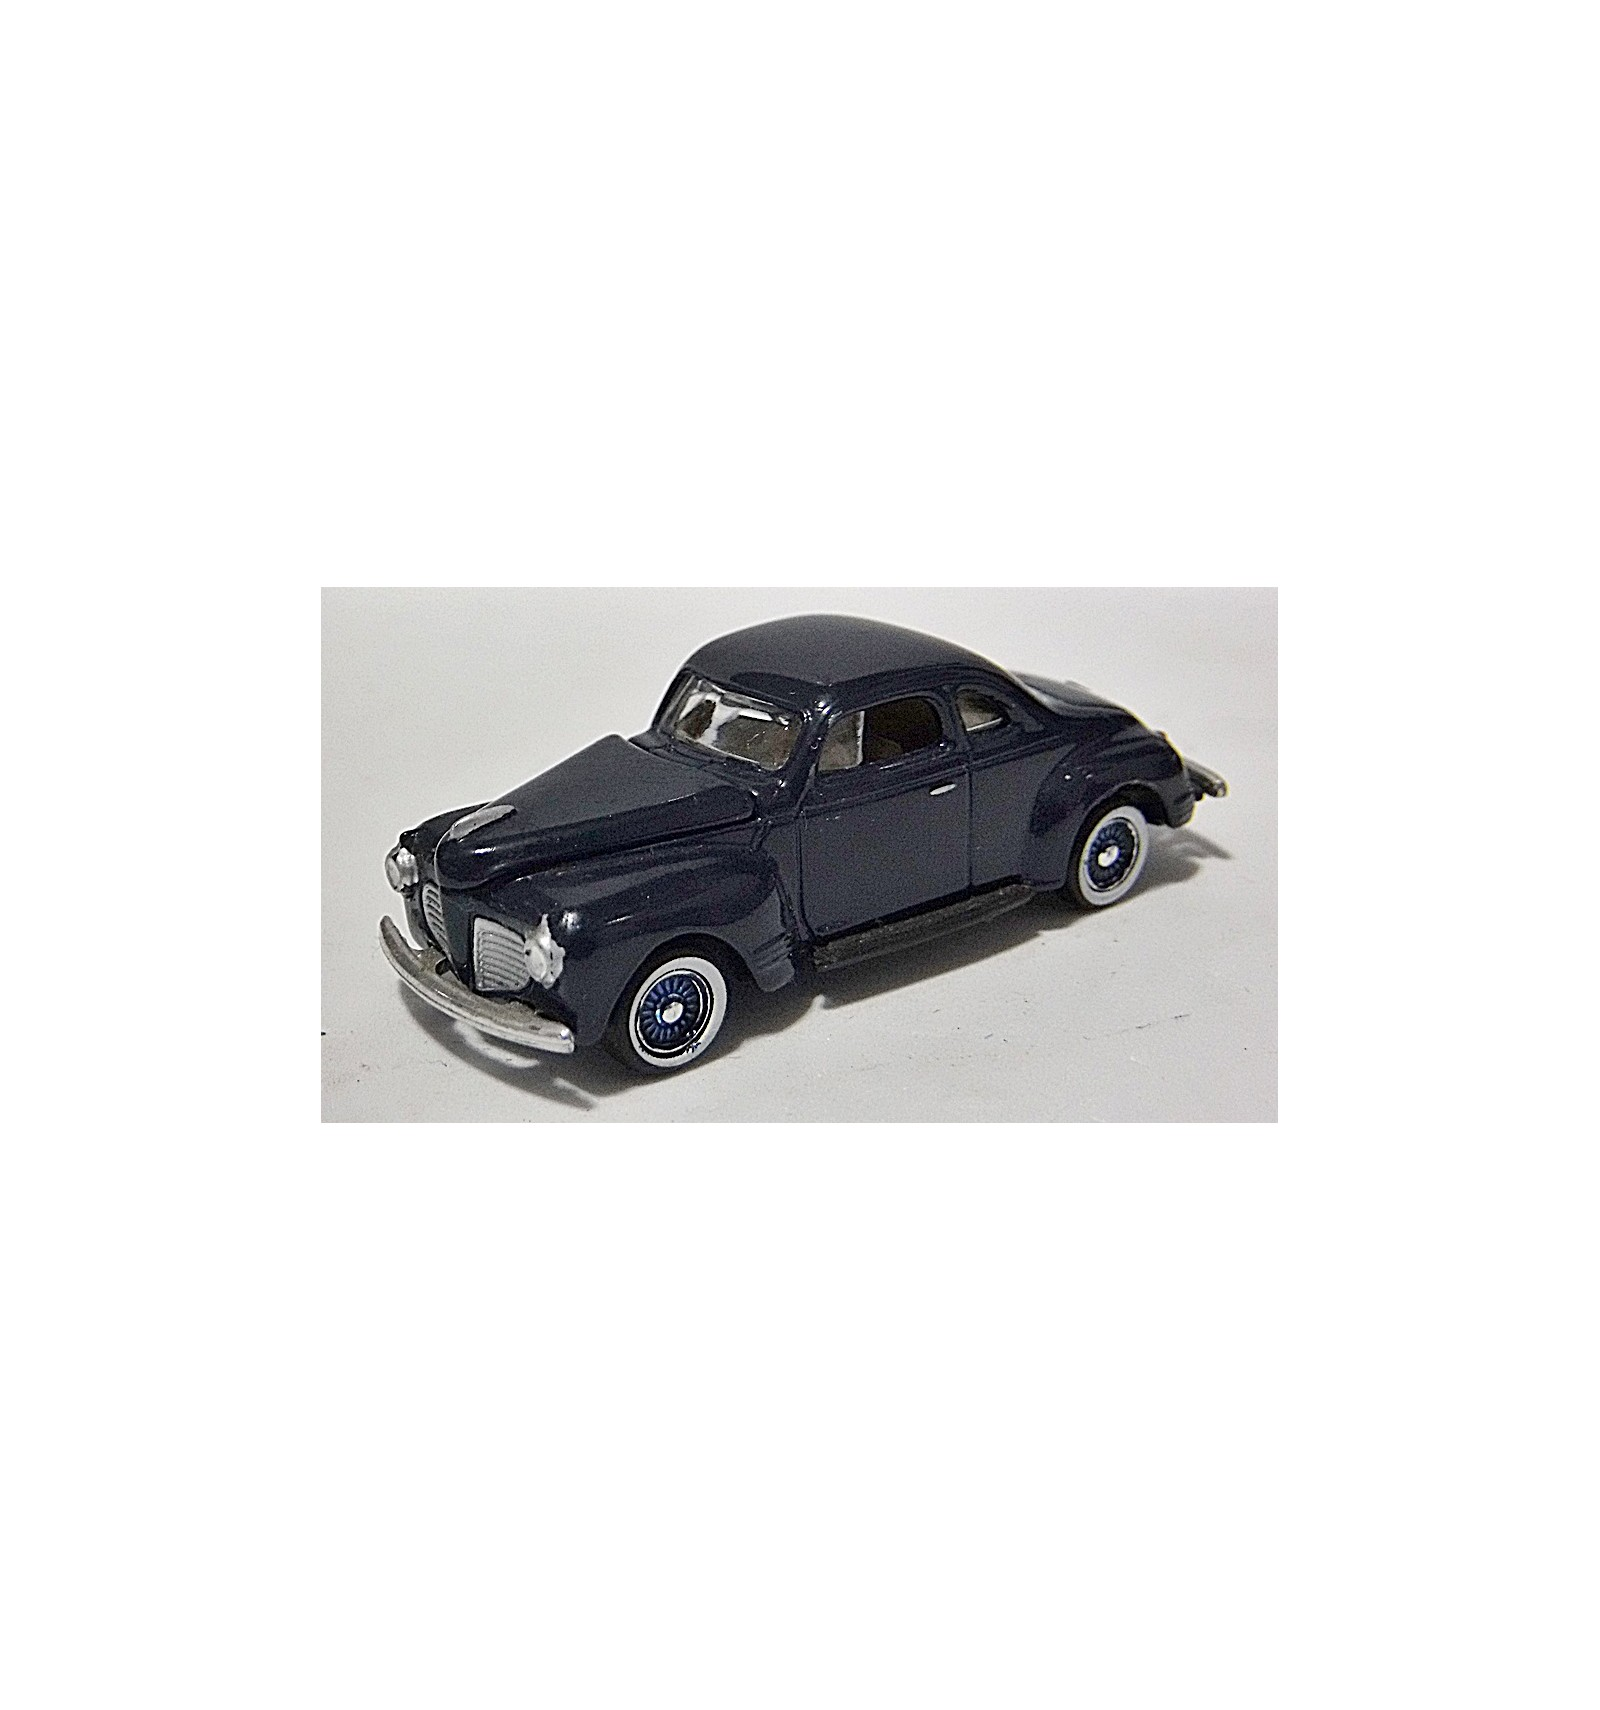 HO SCALE AUTO 1940 FORD COUPE